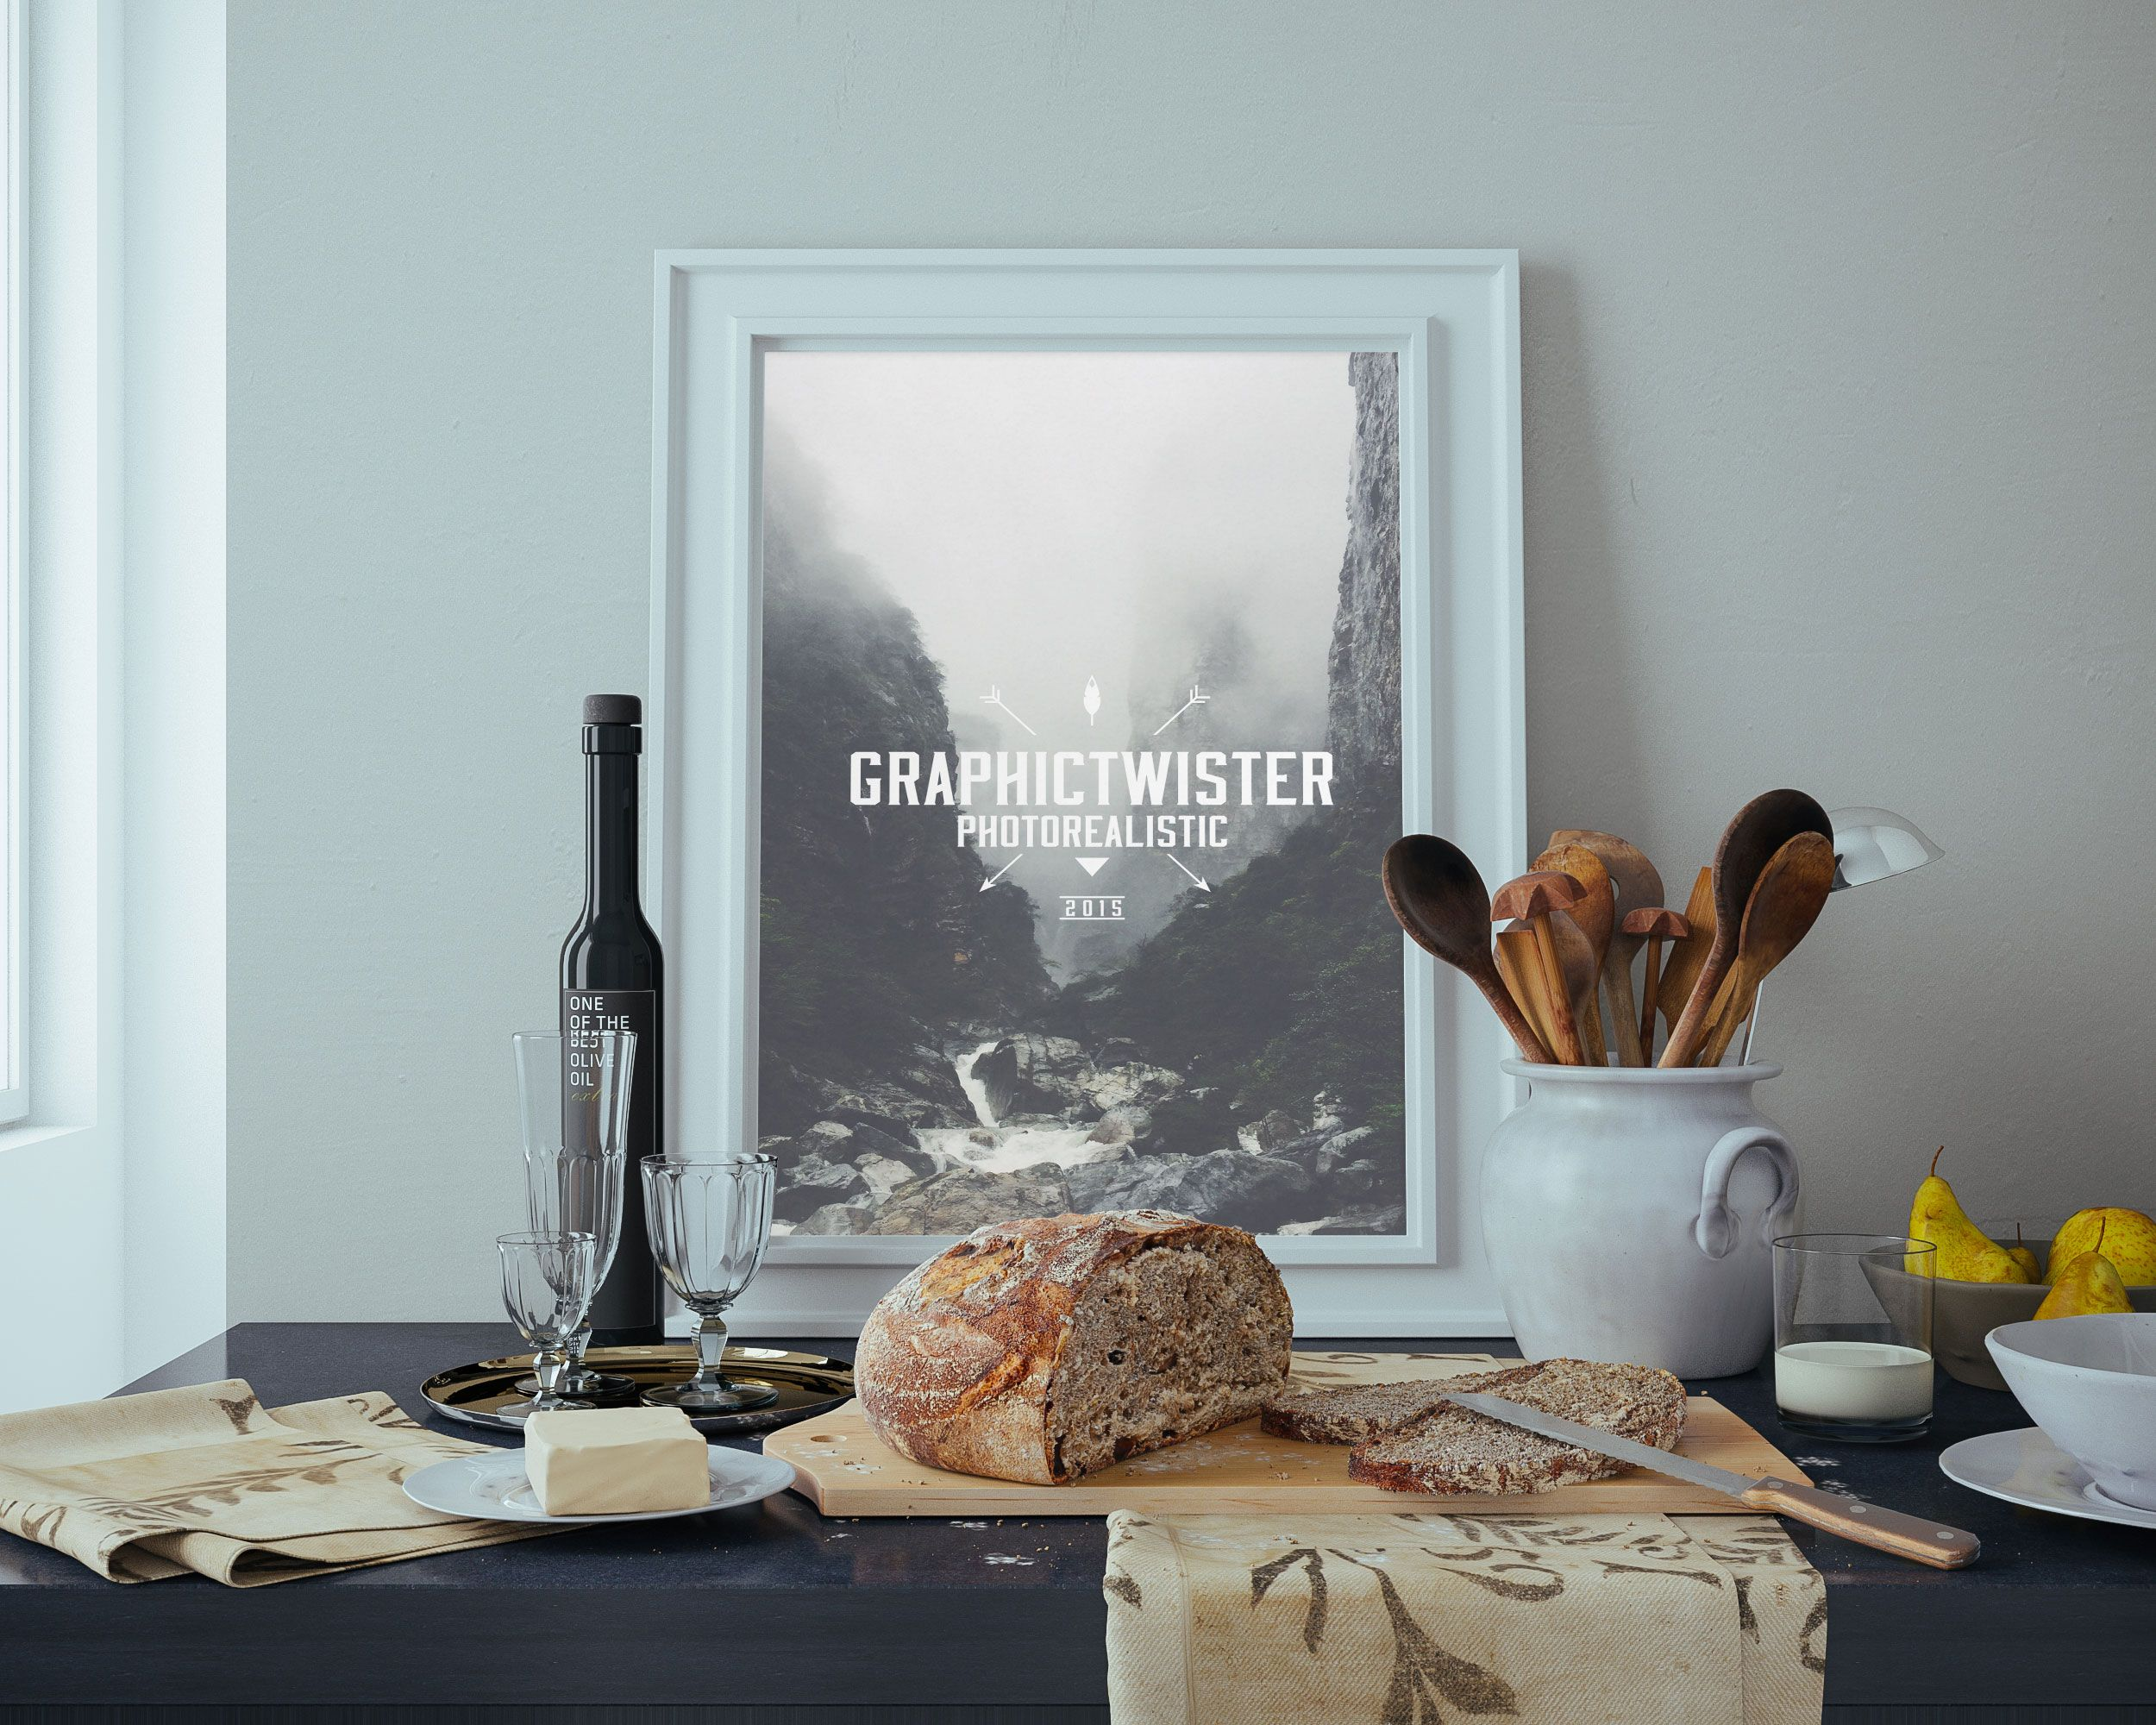 Design your poster free - Mockup In The Kitchen Premium And Free Psd Resources